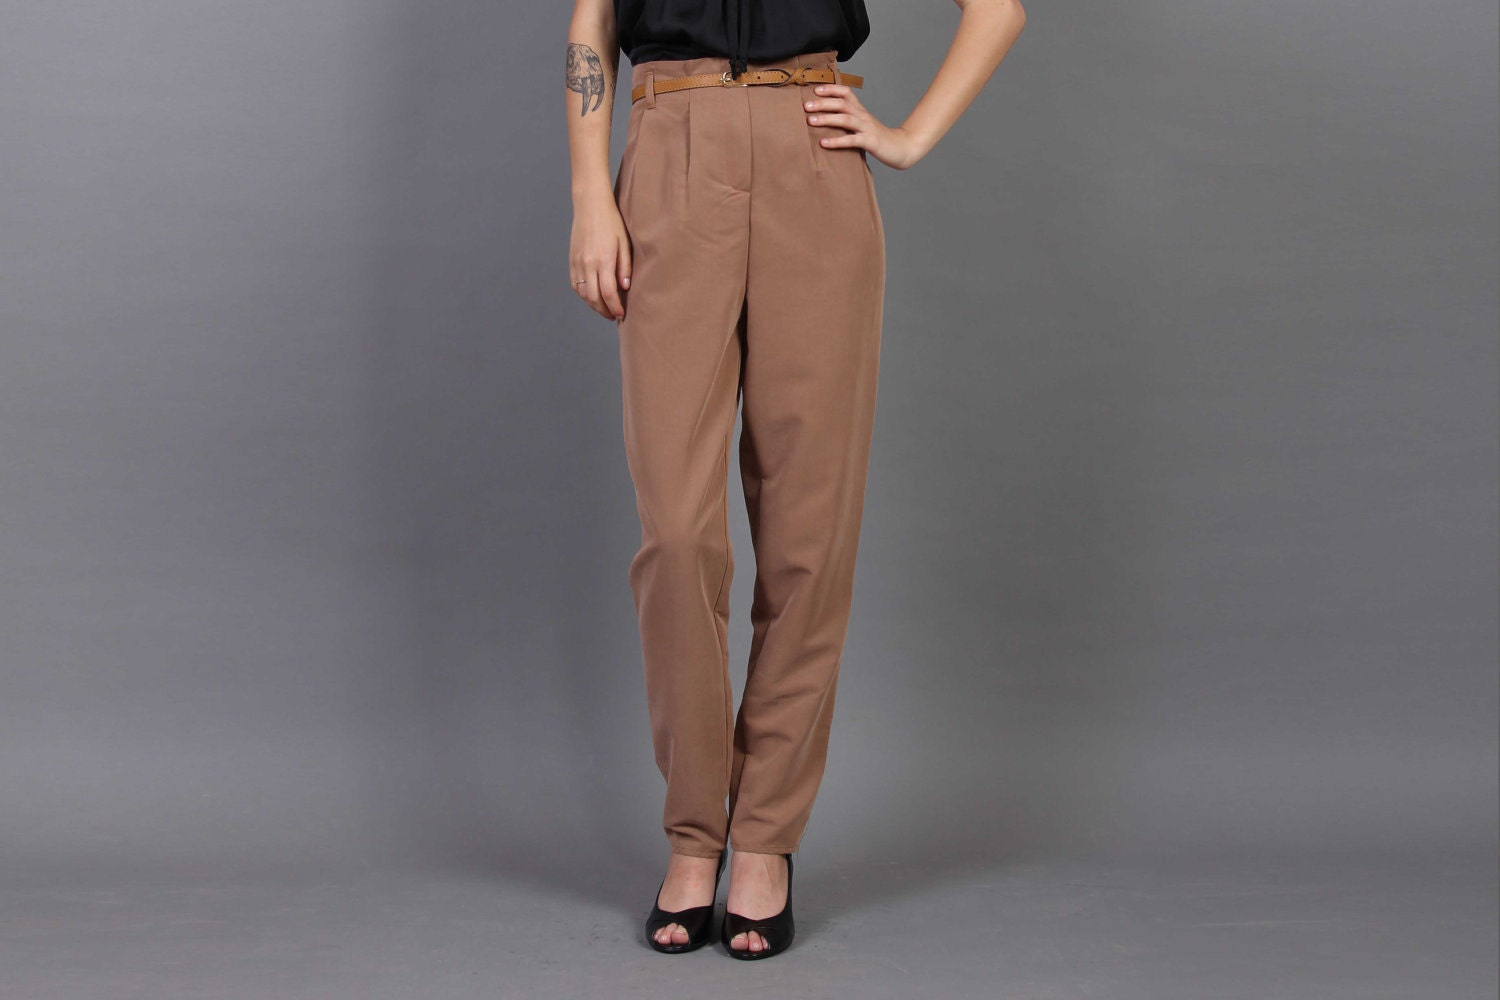 Brown High Waisted Pants